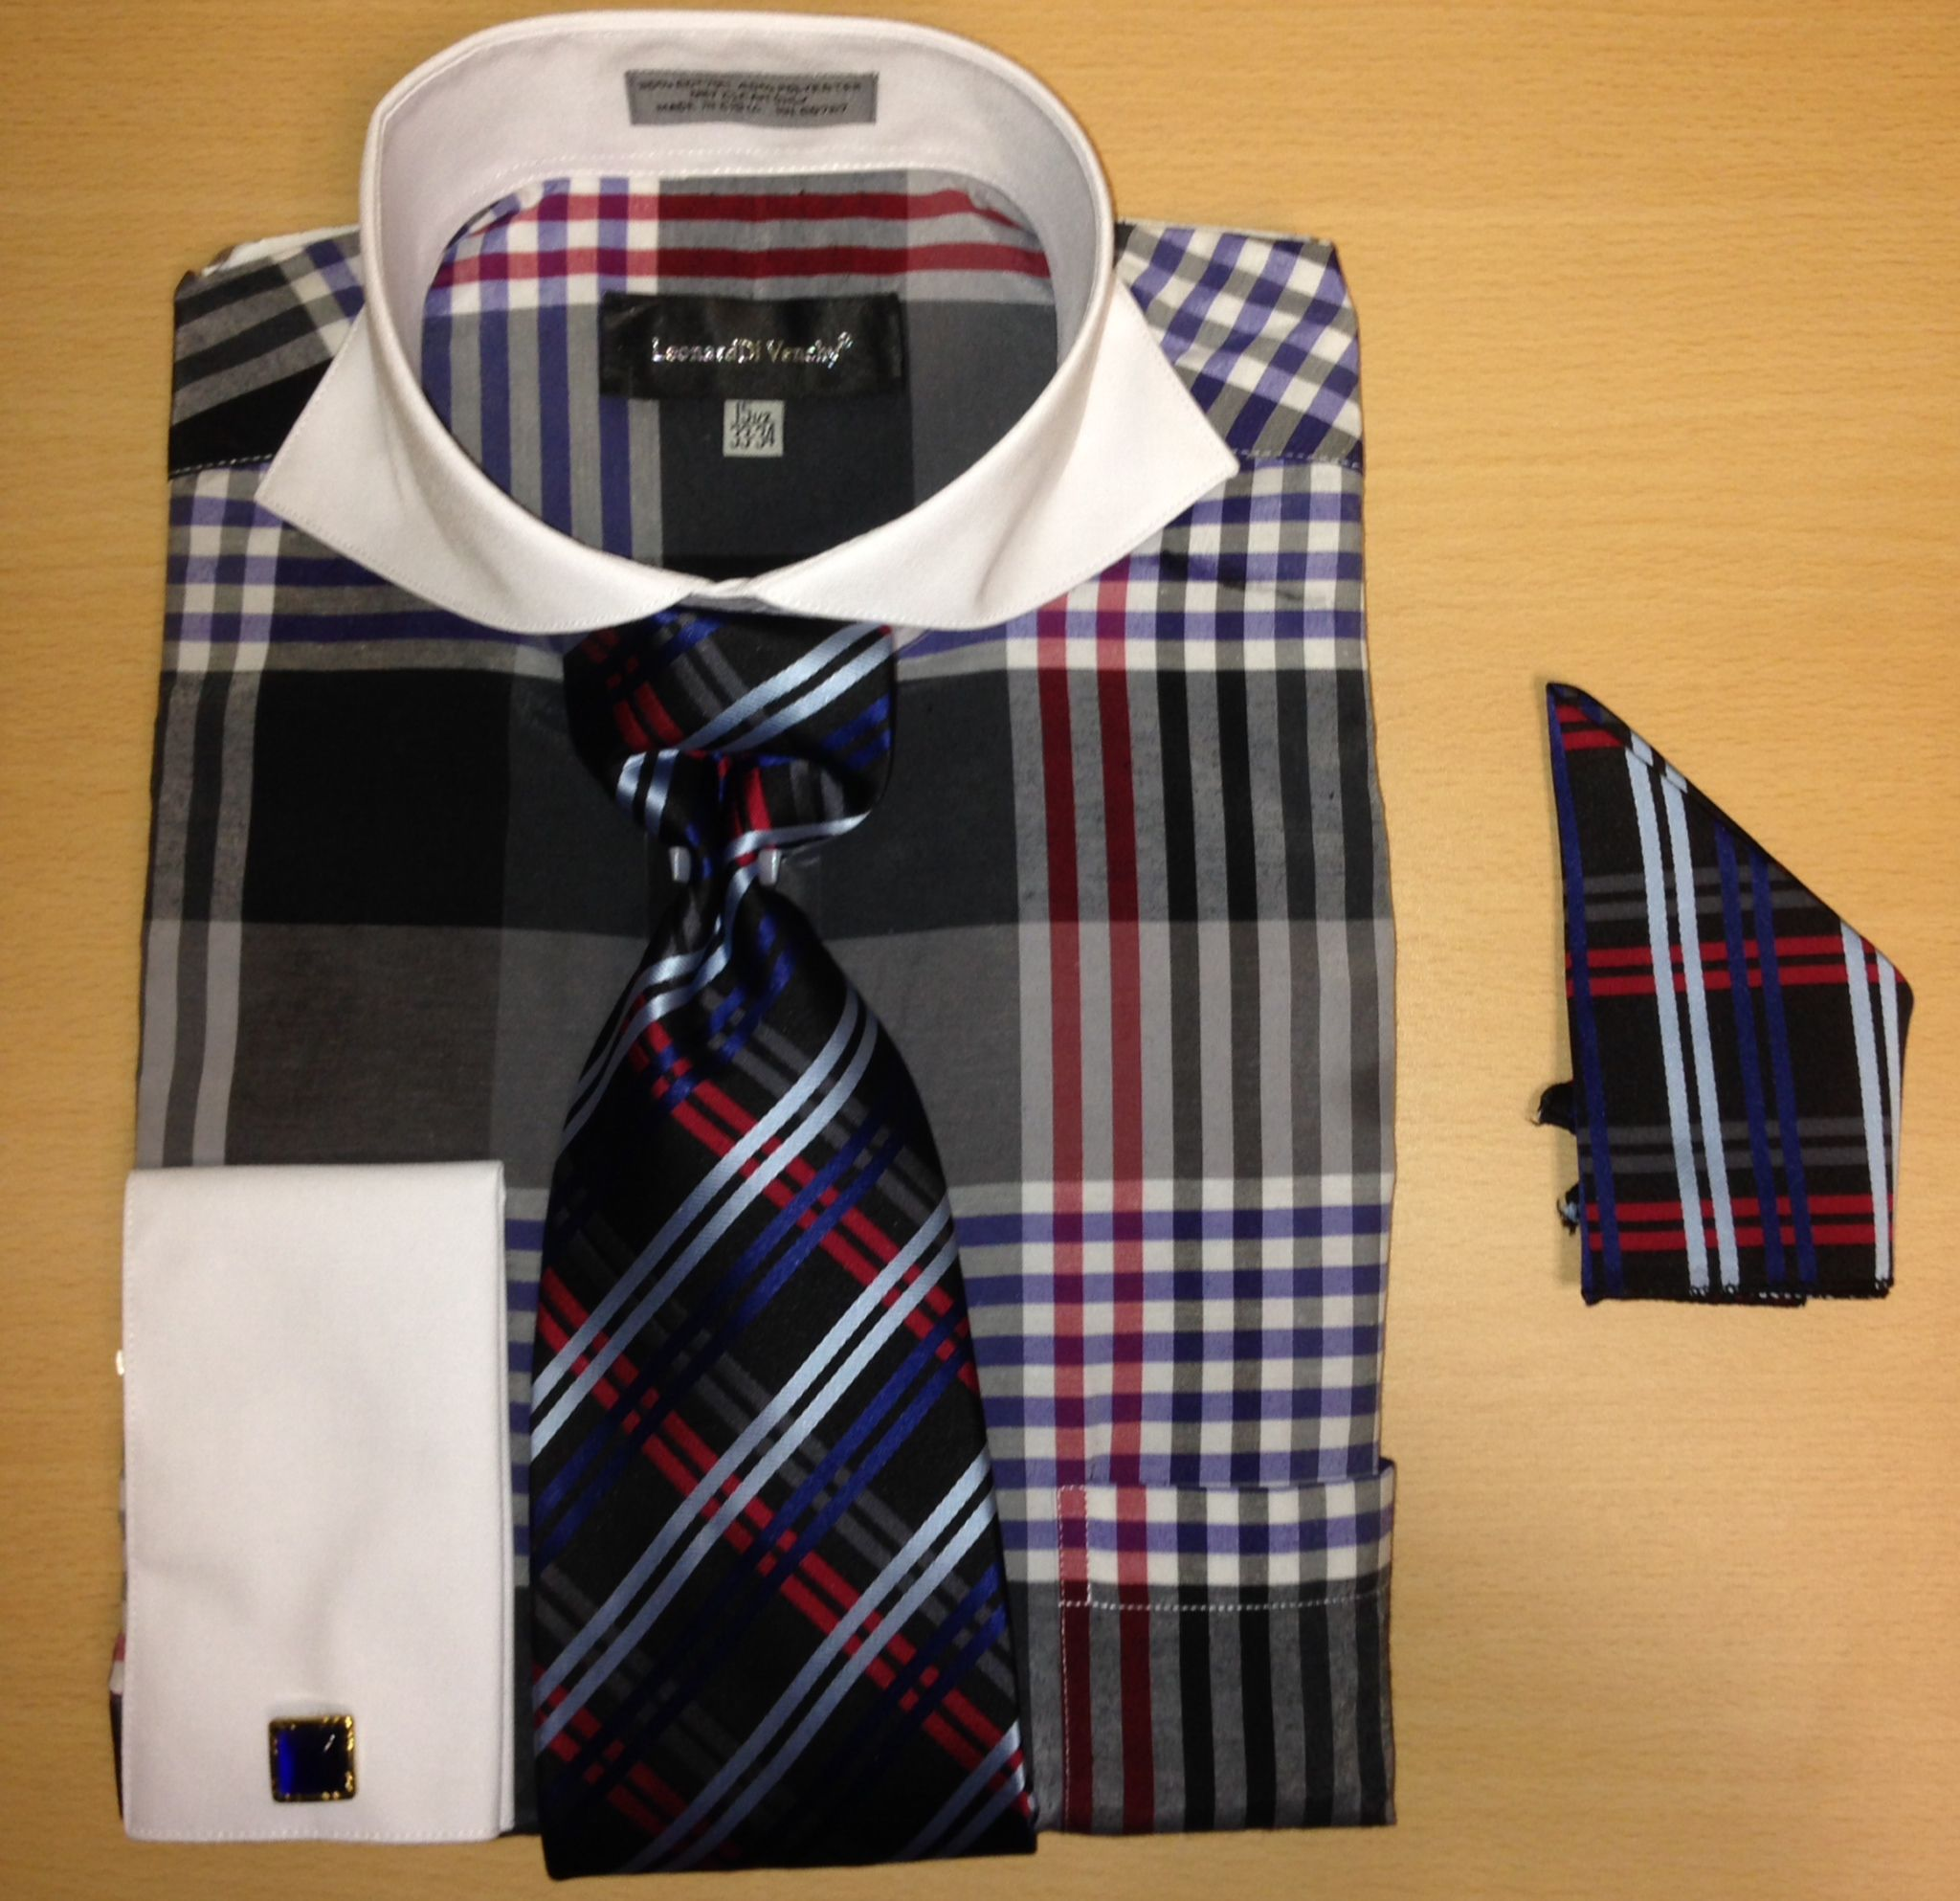 Men's Fashion Large Plaid Check Pattern Cufflink Dress Shirt Set - Navy with Red Accents